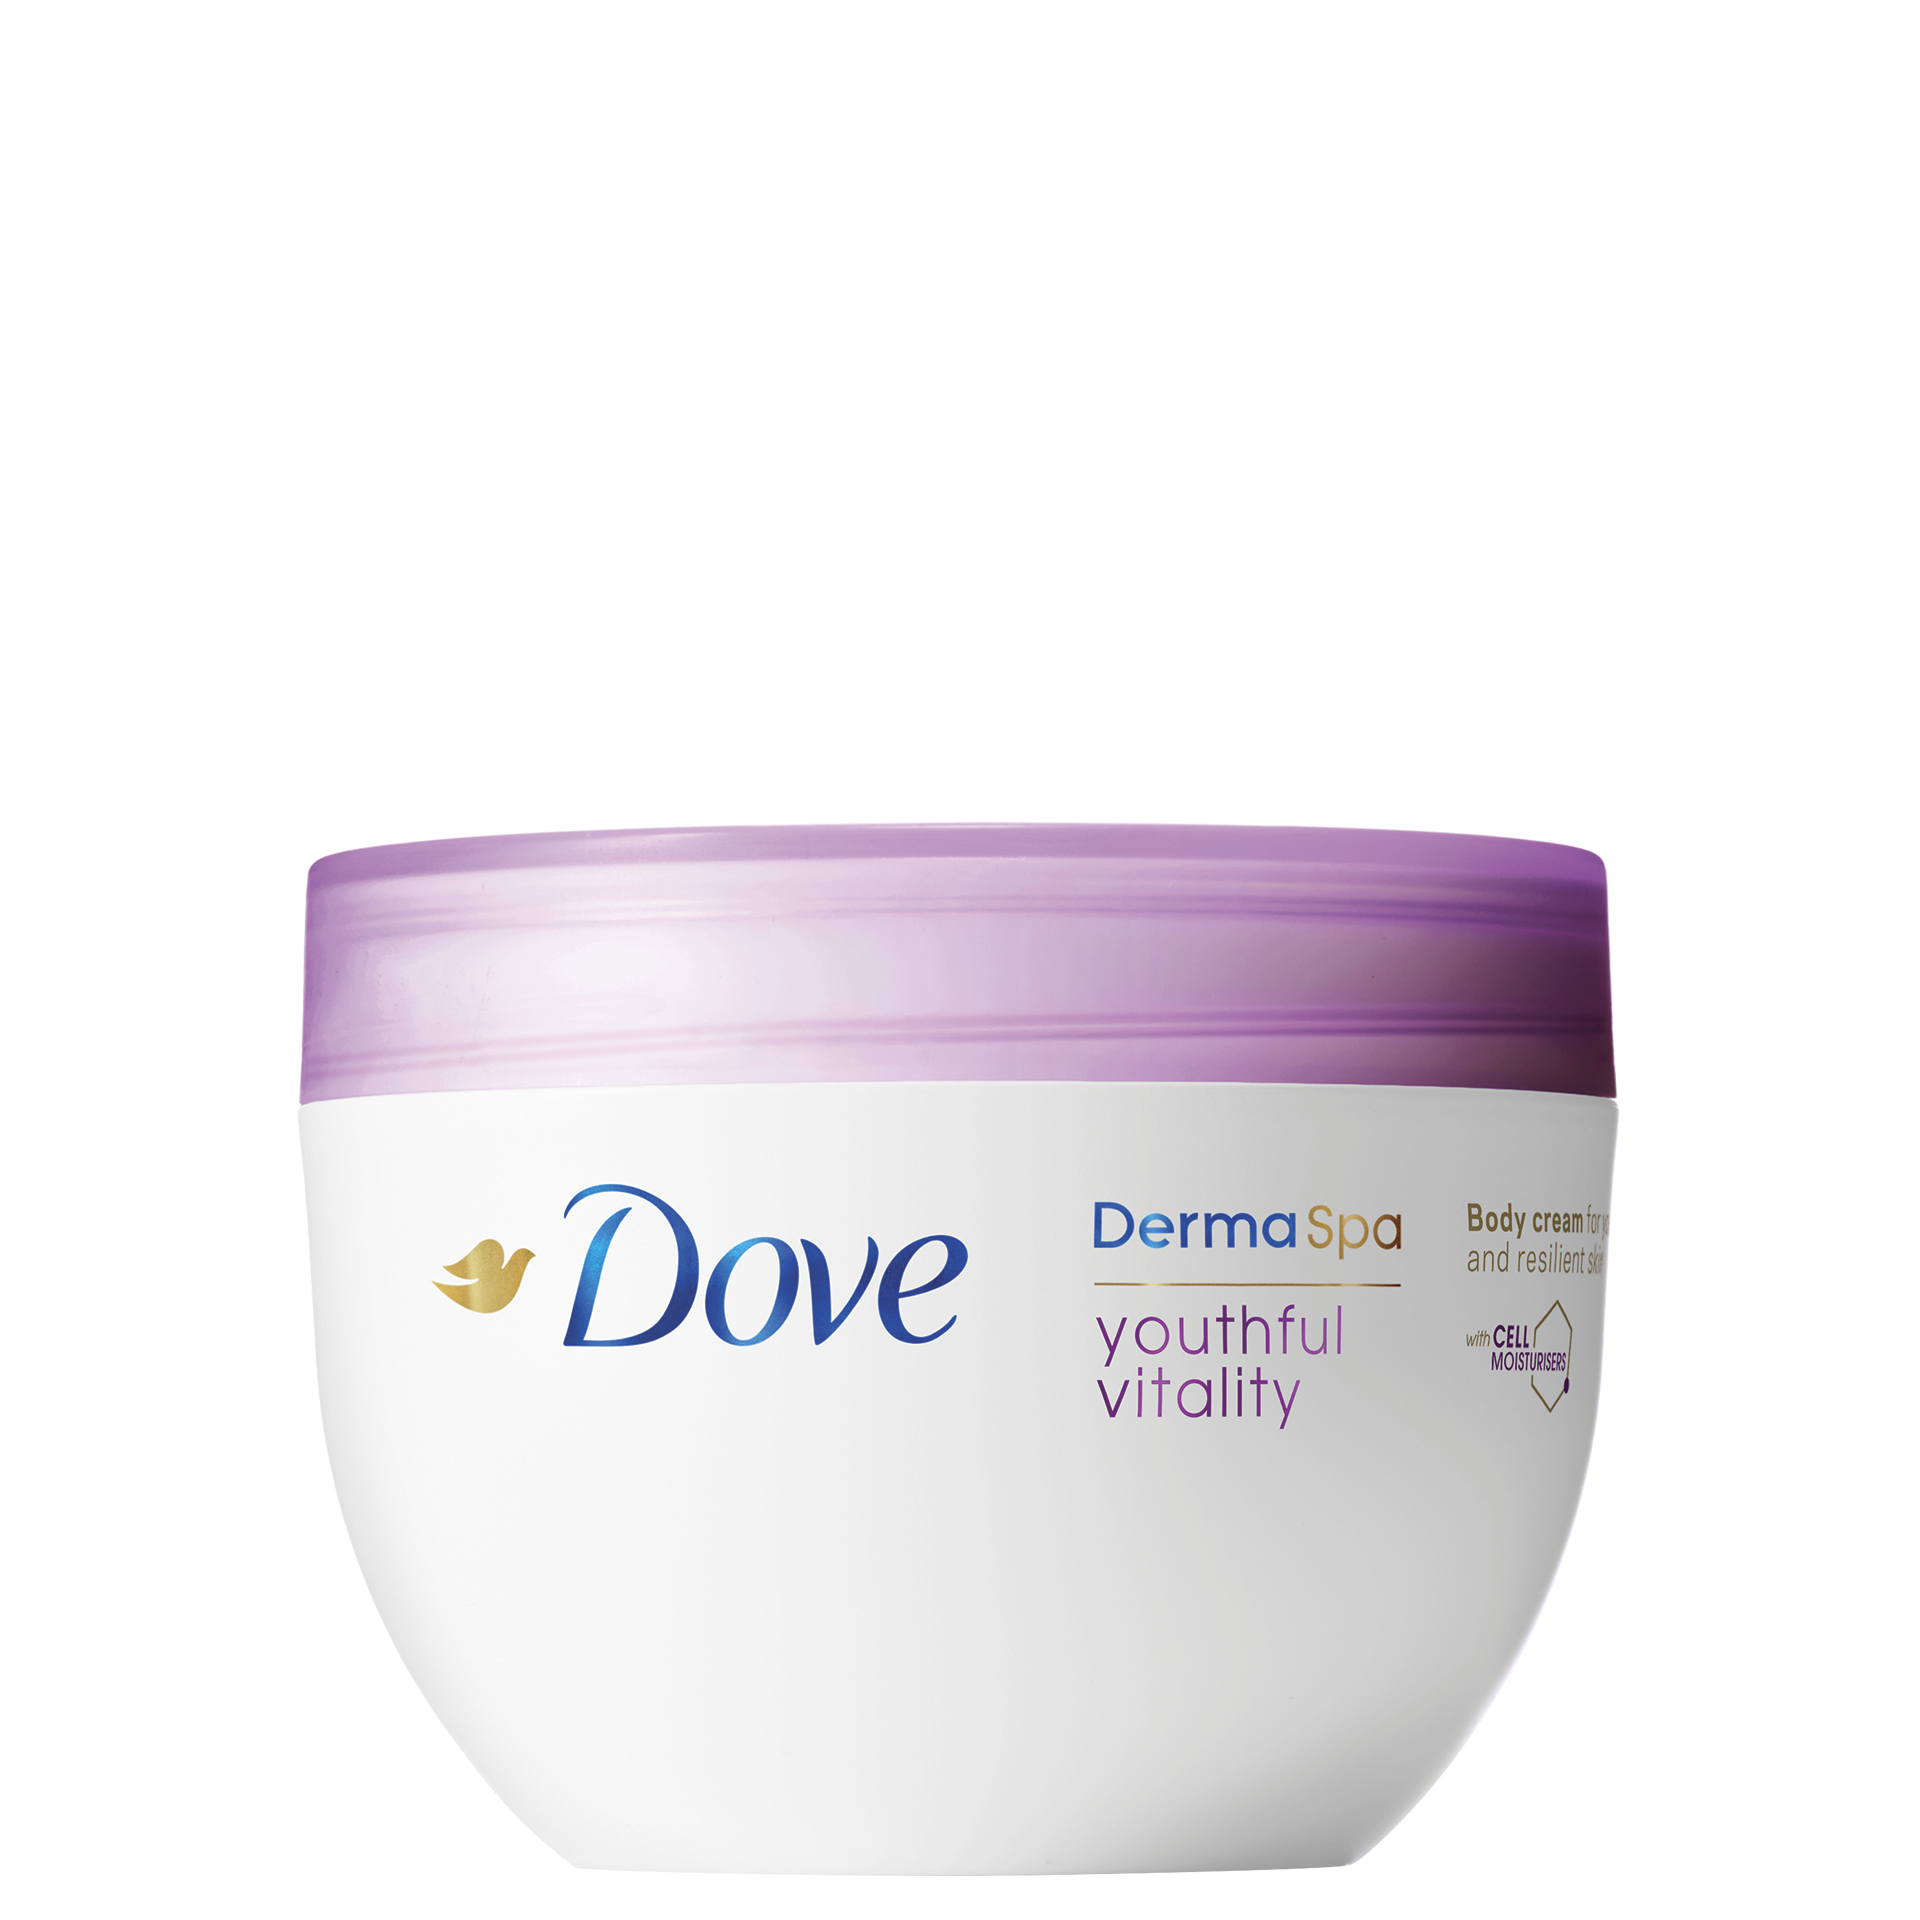 Dove Dermaspa Youthful Vitality Body Cream